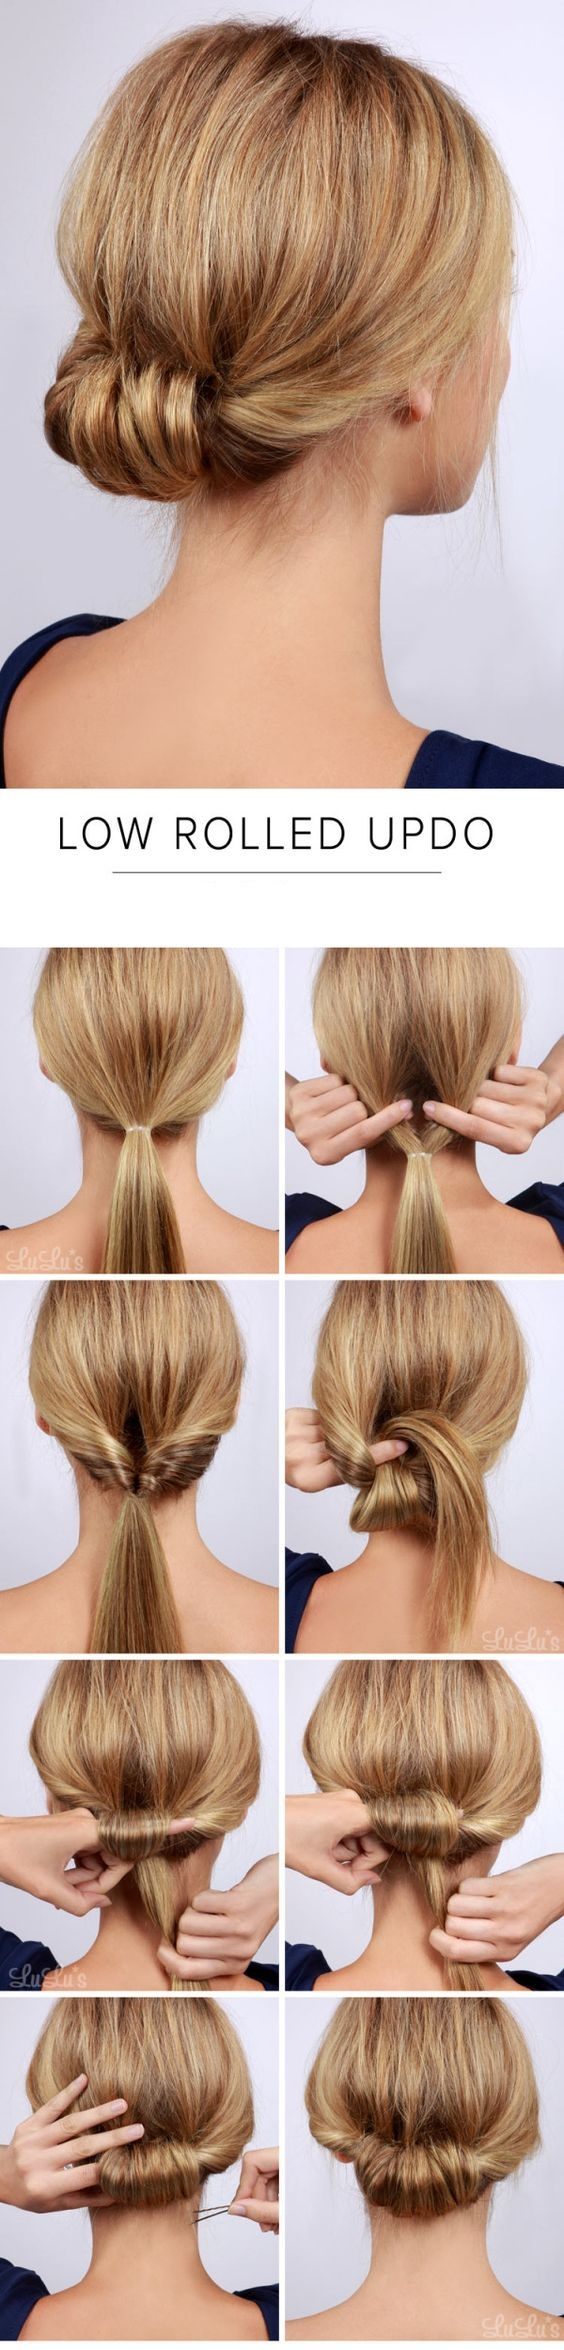 The neat chignon bun for proms